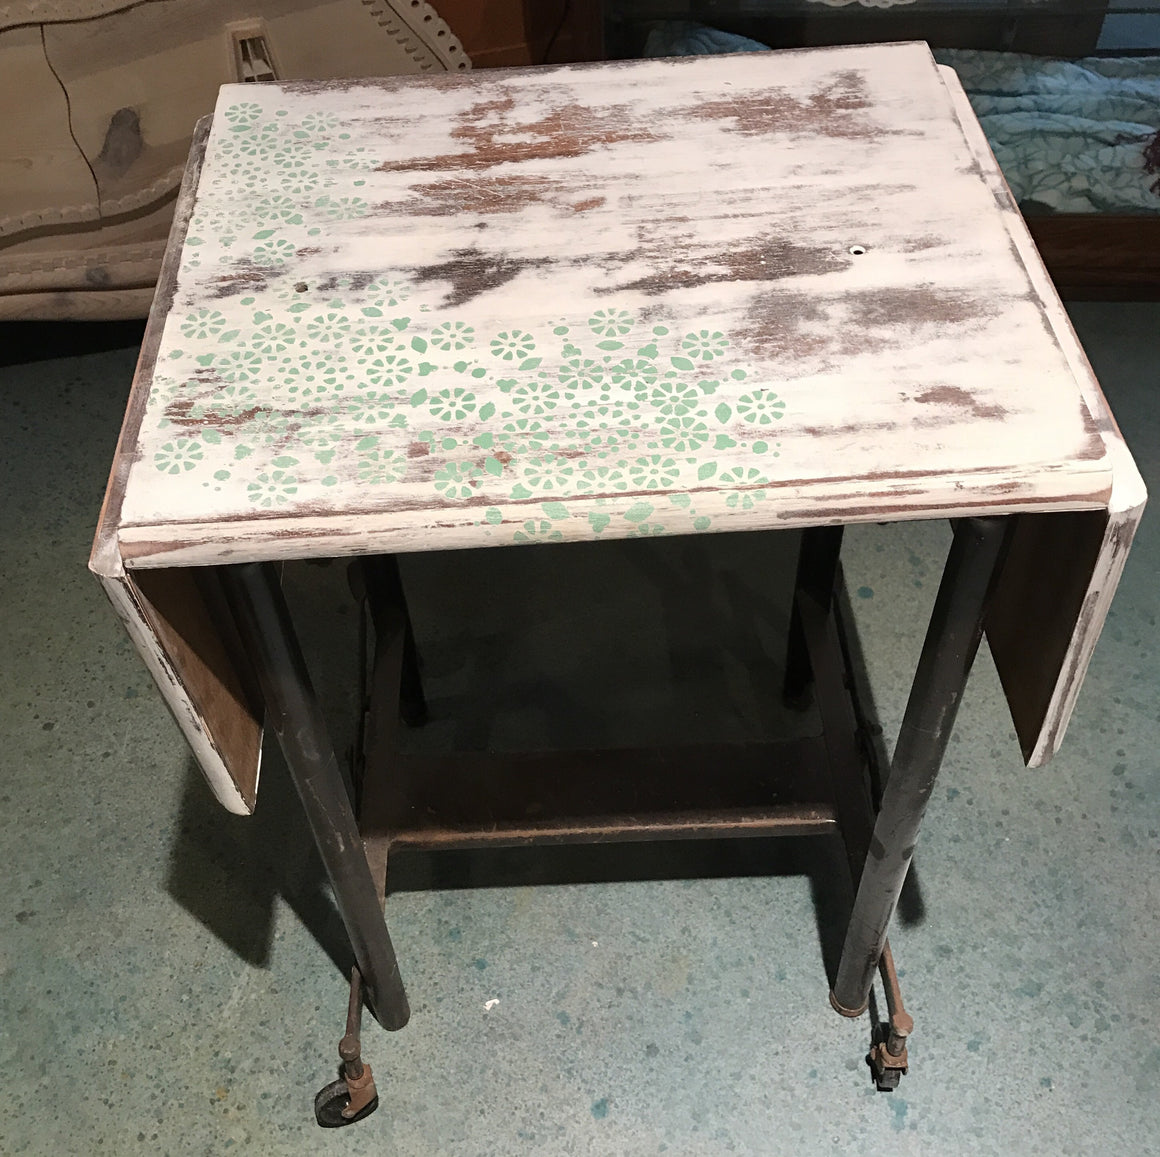 Typewriter Stand, Shabby Chic - VINTAGE JOURNEY MARKET - Upcycling & Restoration